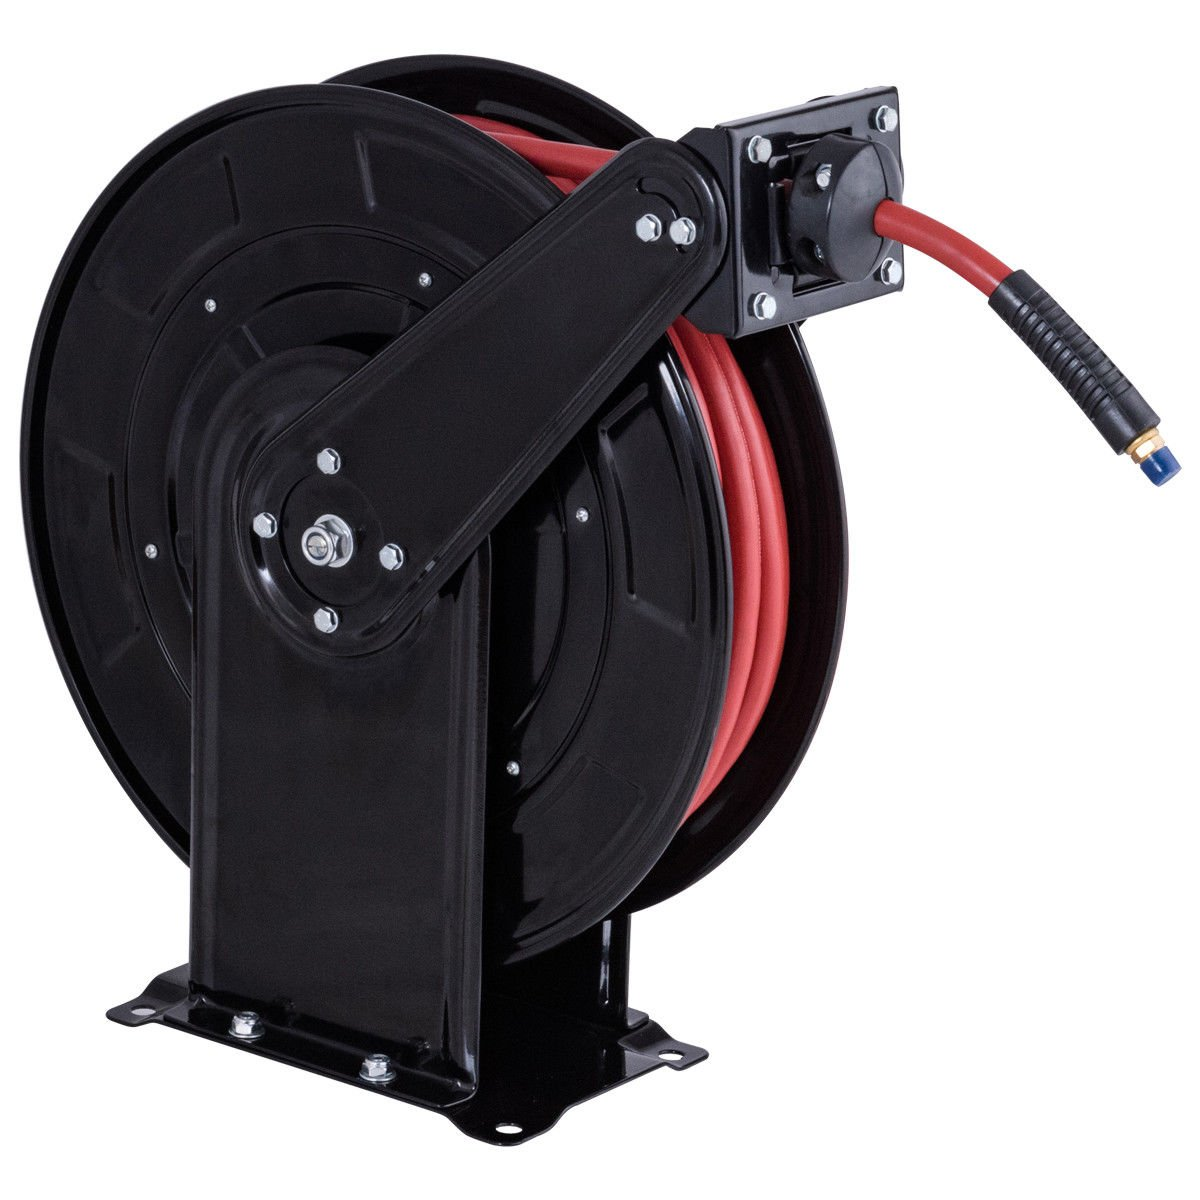 Goplus Steel Air Hose Reel with Retractable 3/8 x 65' Rubber Hose, Heavy Duty and High Pressure, Max. 300 PSI